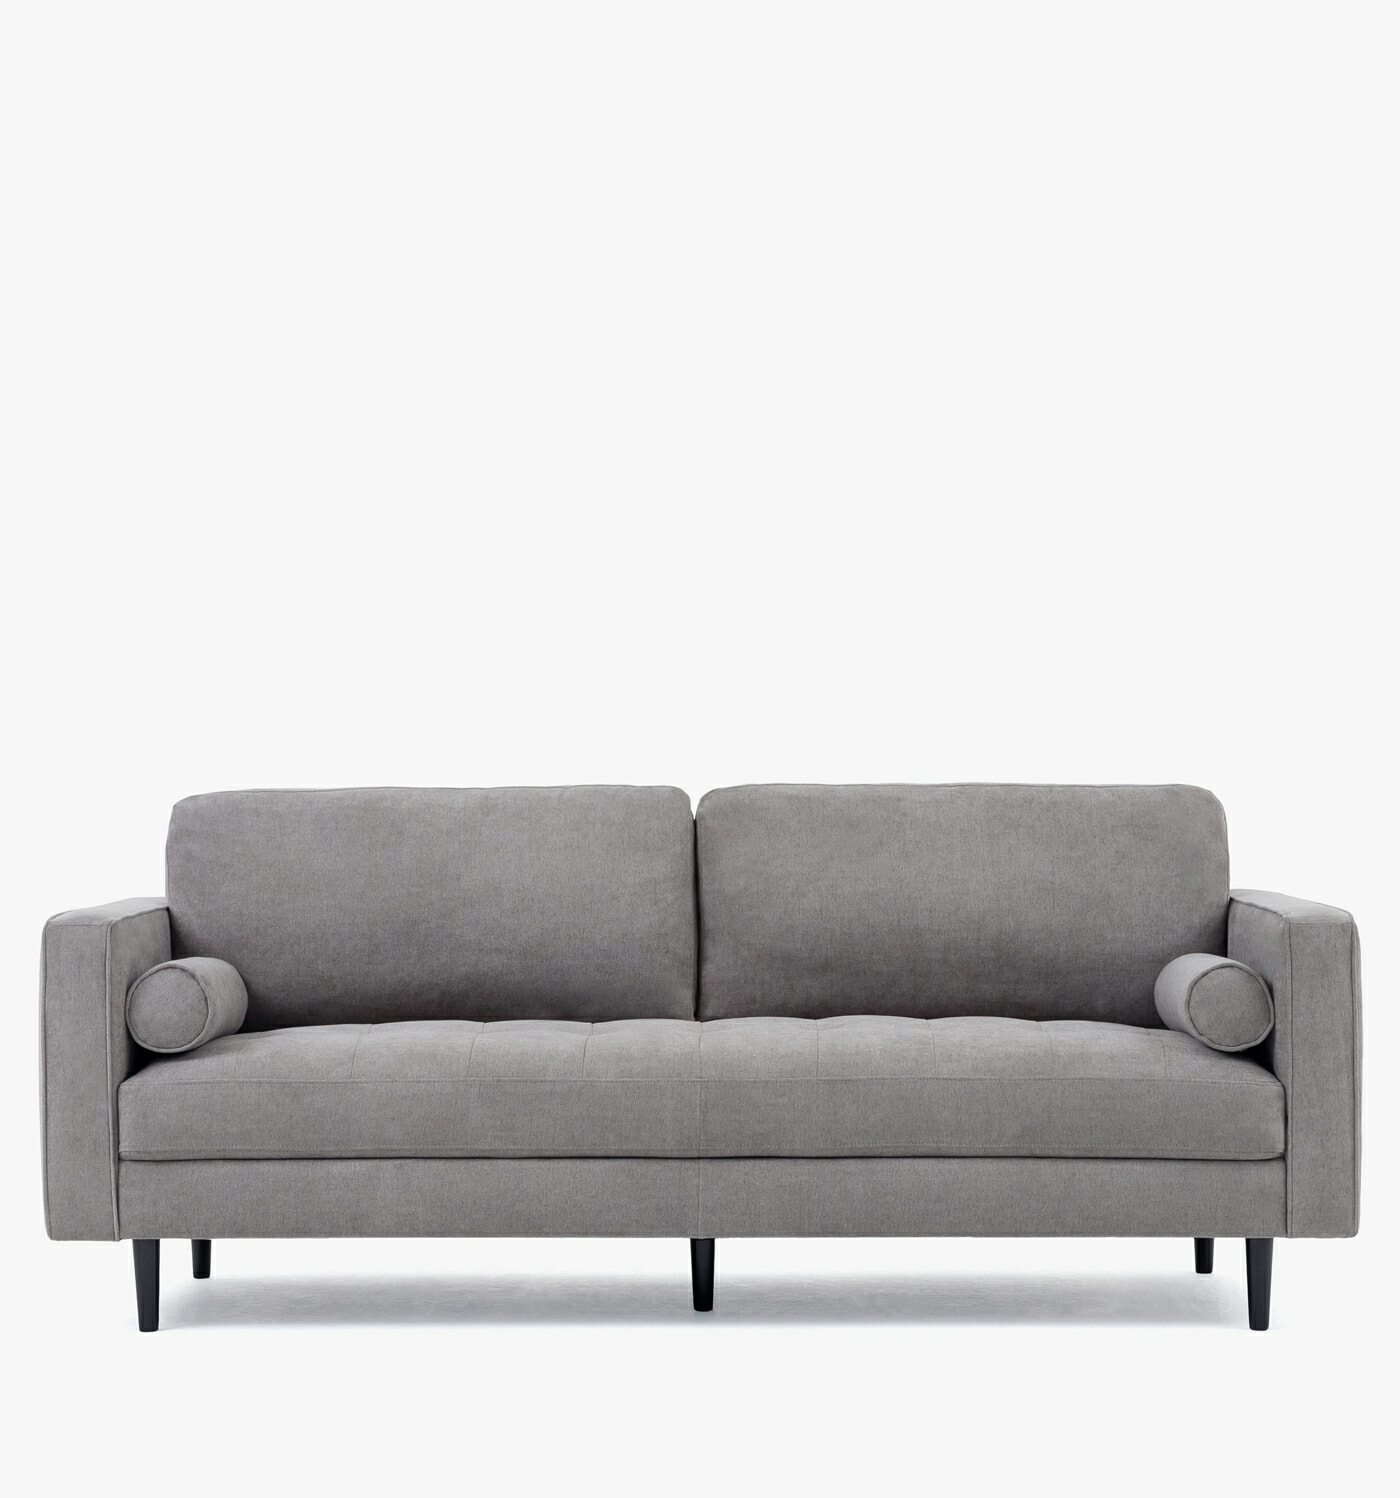 The Soho Sofa - Grey